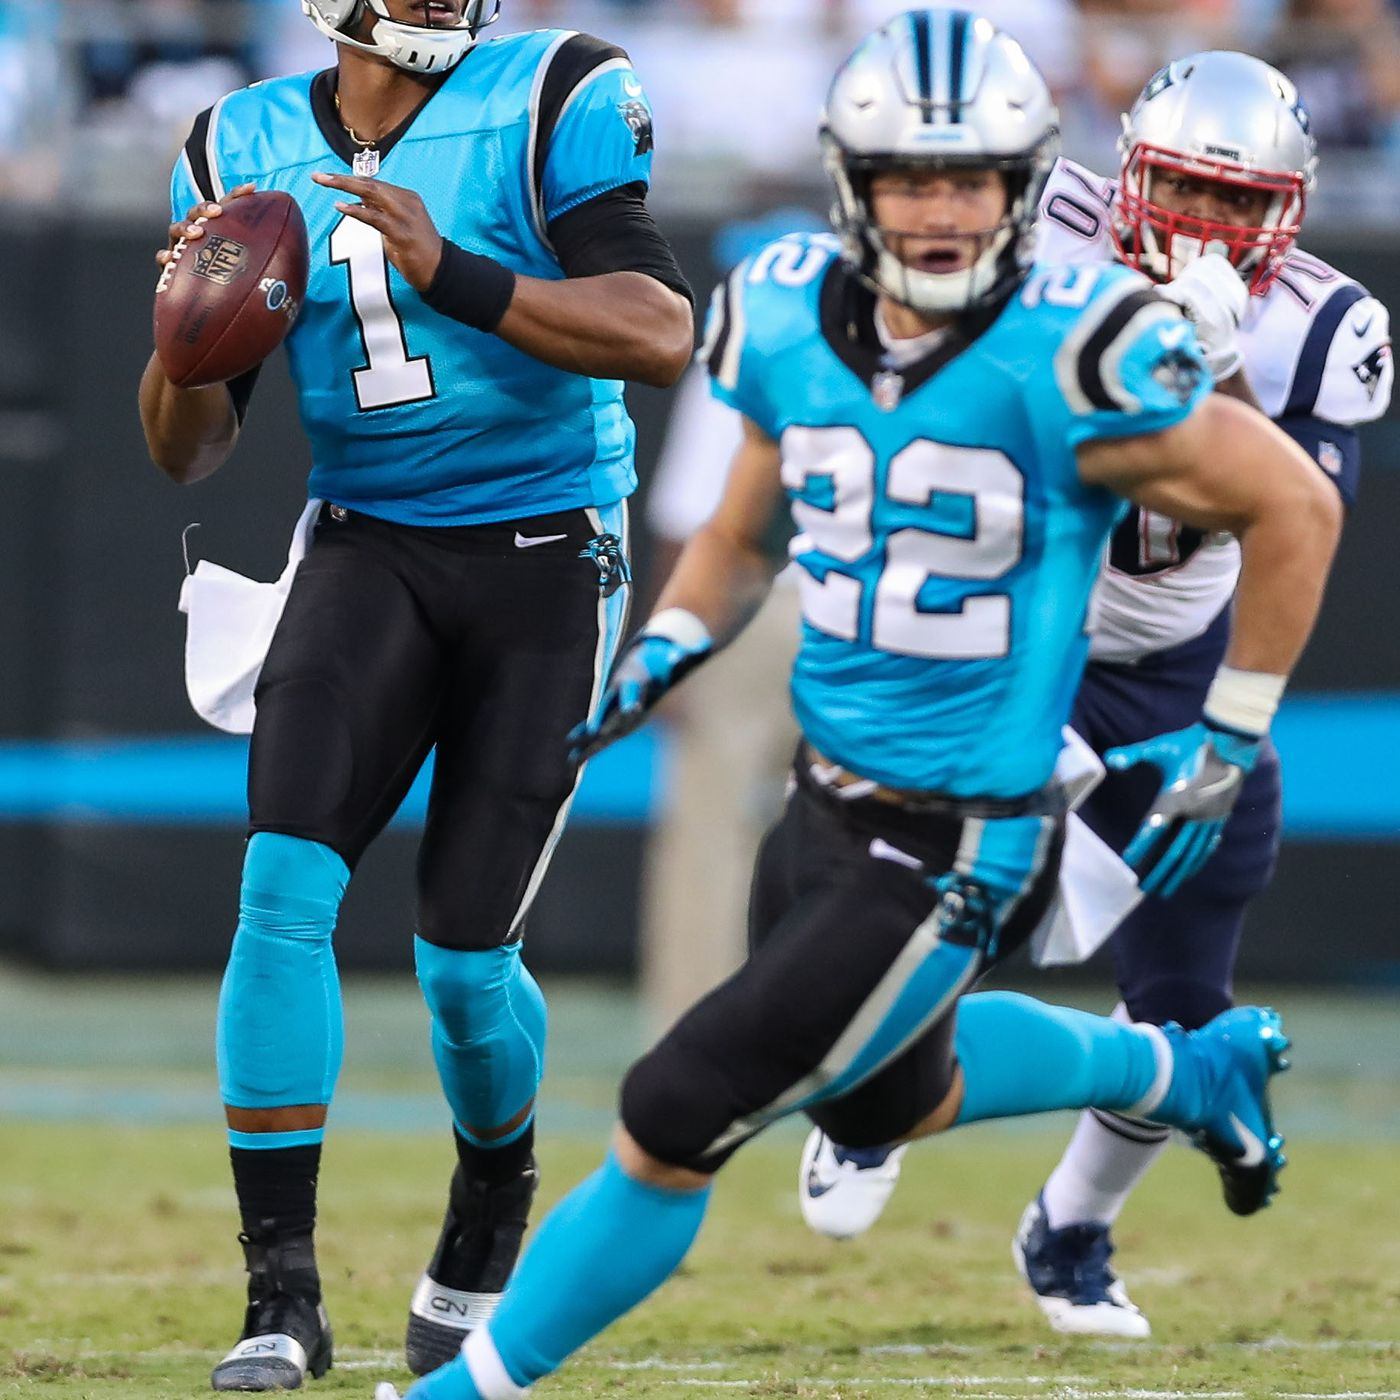 Panthers vs Patriots final score: Panthers defeat Patriots 25 14 in